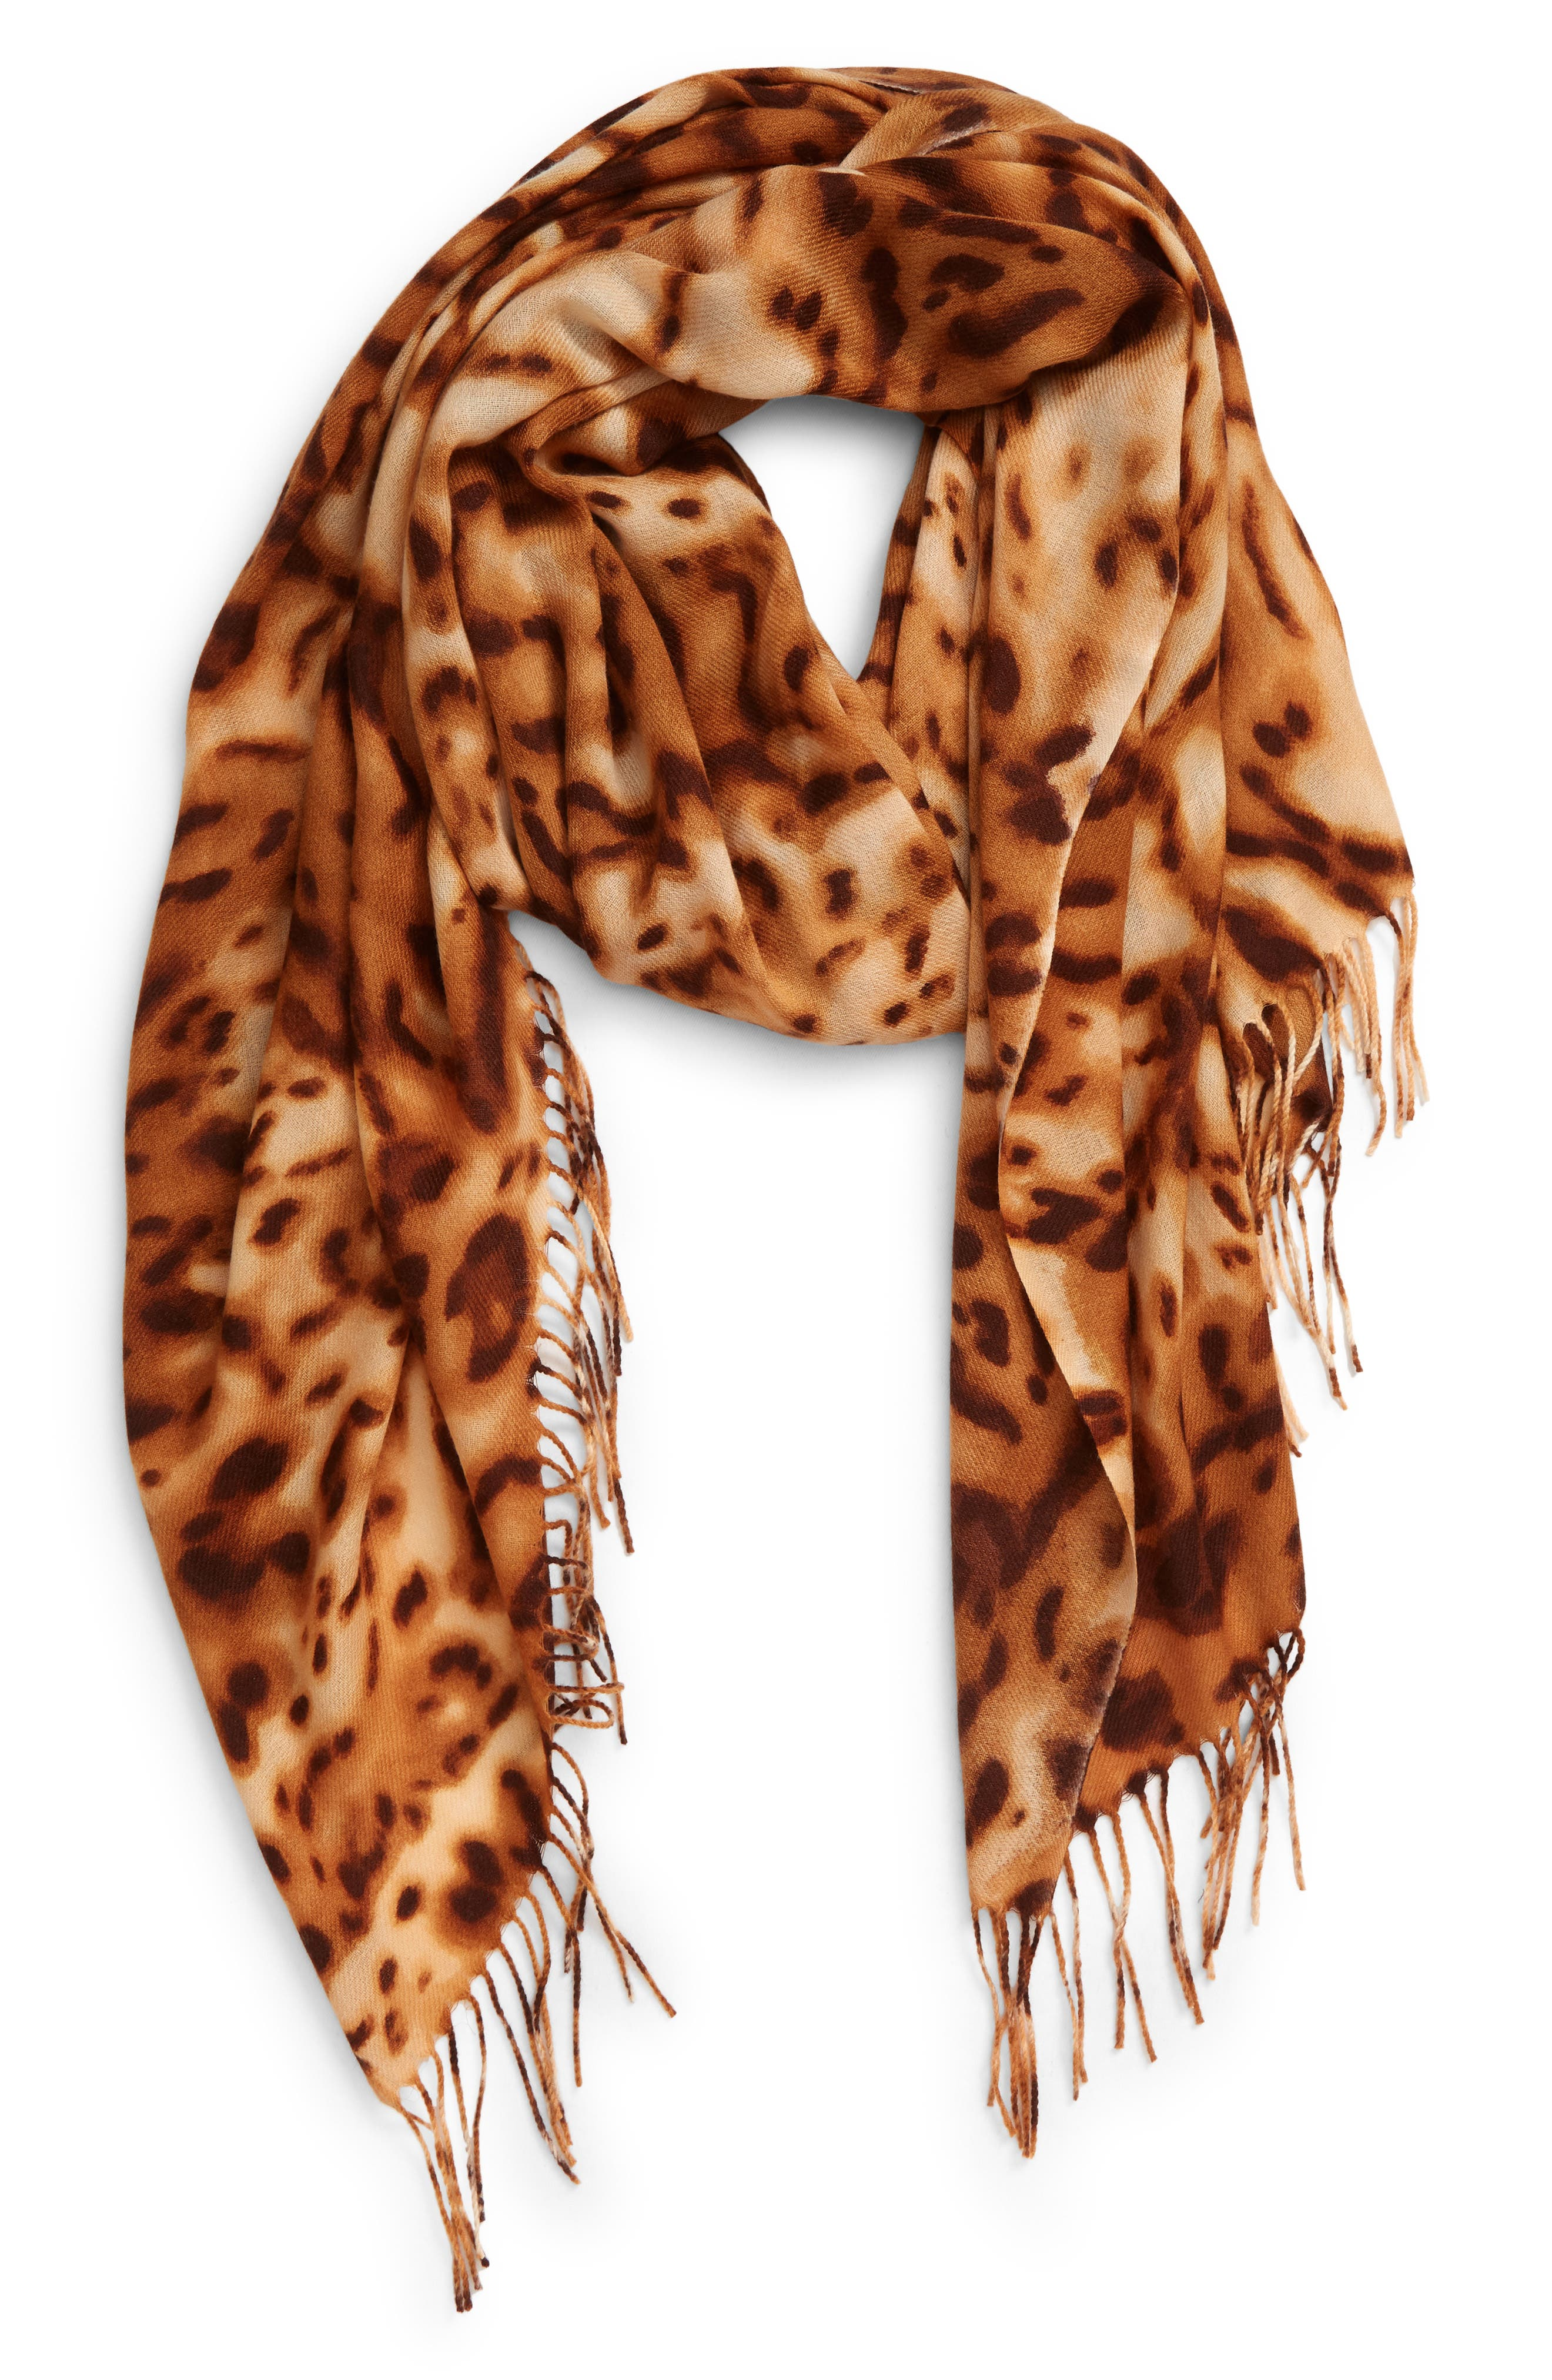 An artful print washes across a lusciously soft fringed scarf spun from a rich blend of wool and cashmere. Style Name: Nordstrom Tissue Print Wool & Cashmere Wrap Scarf. Style Number: 5457084. Available in stores.